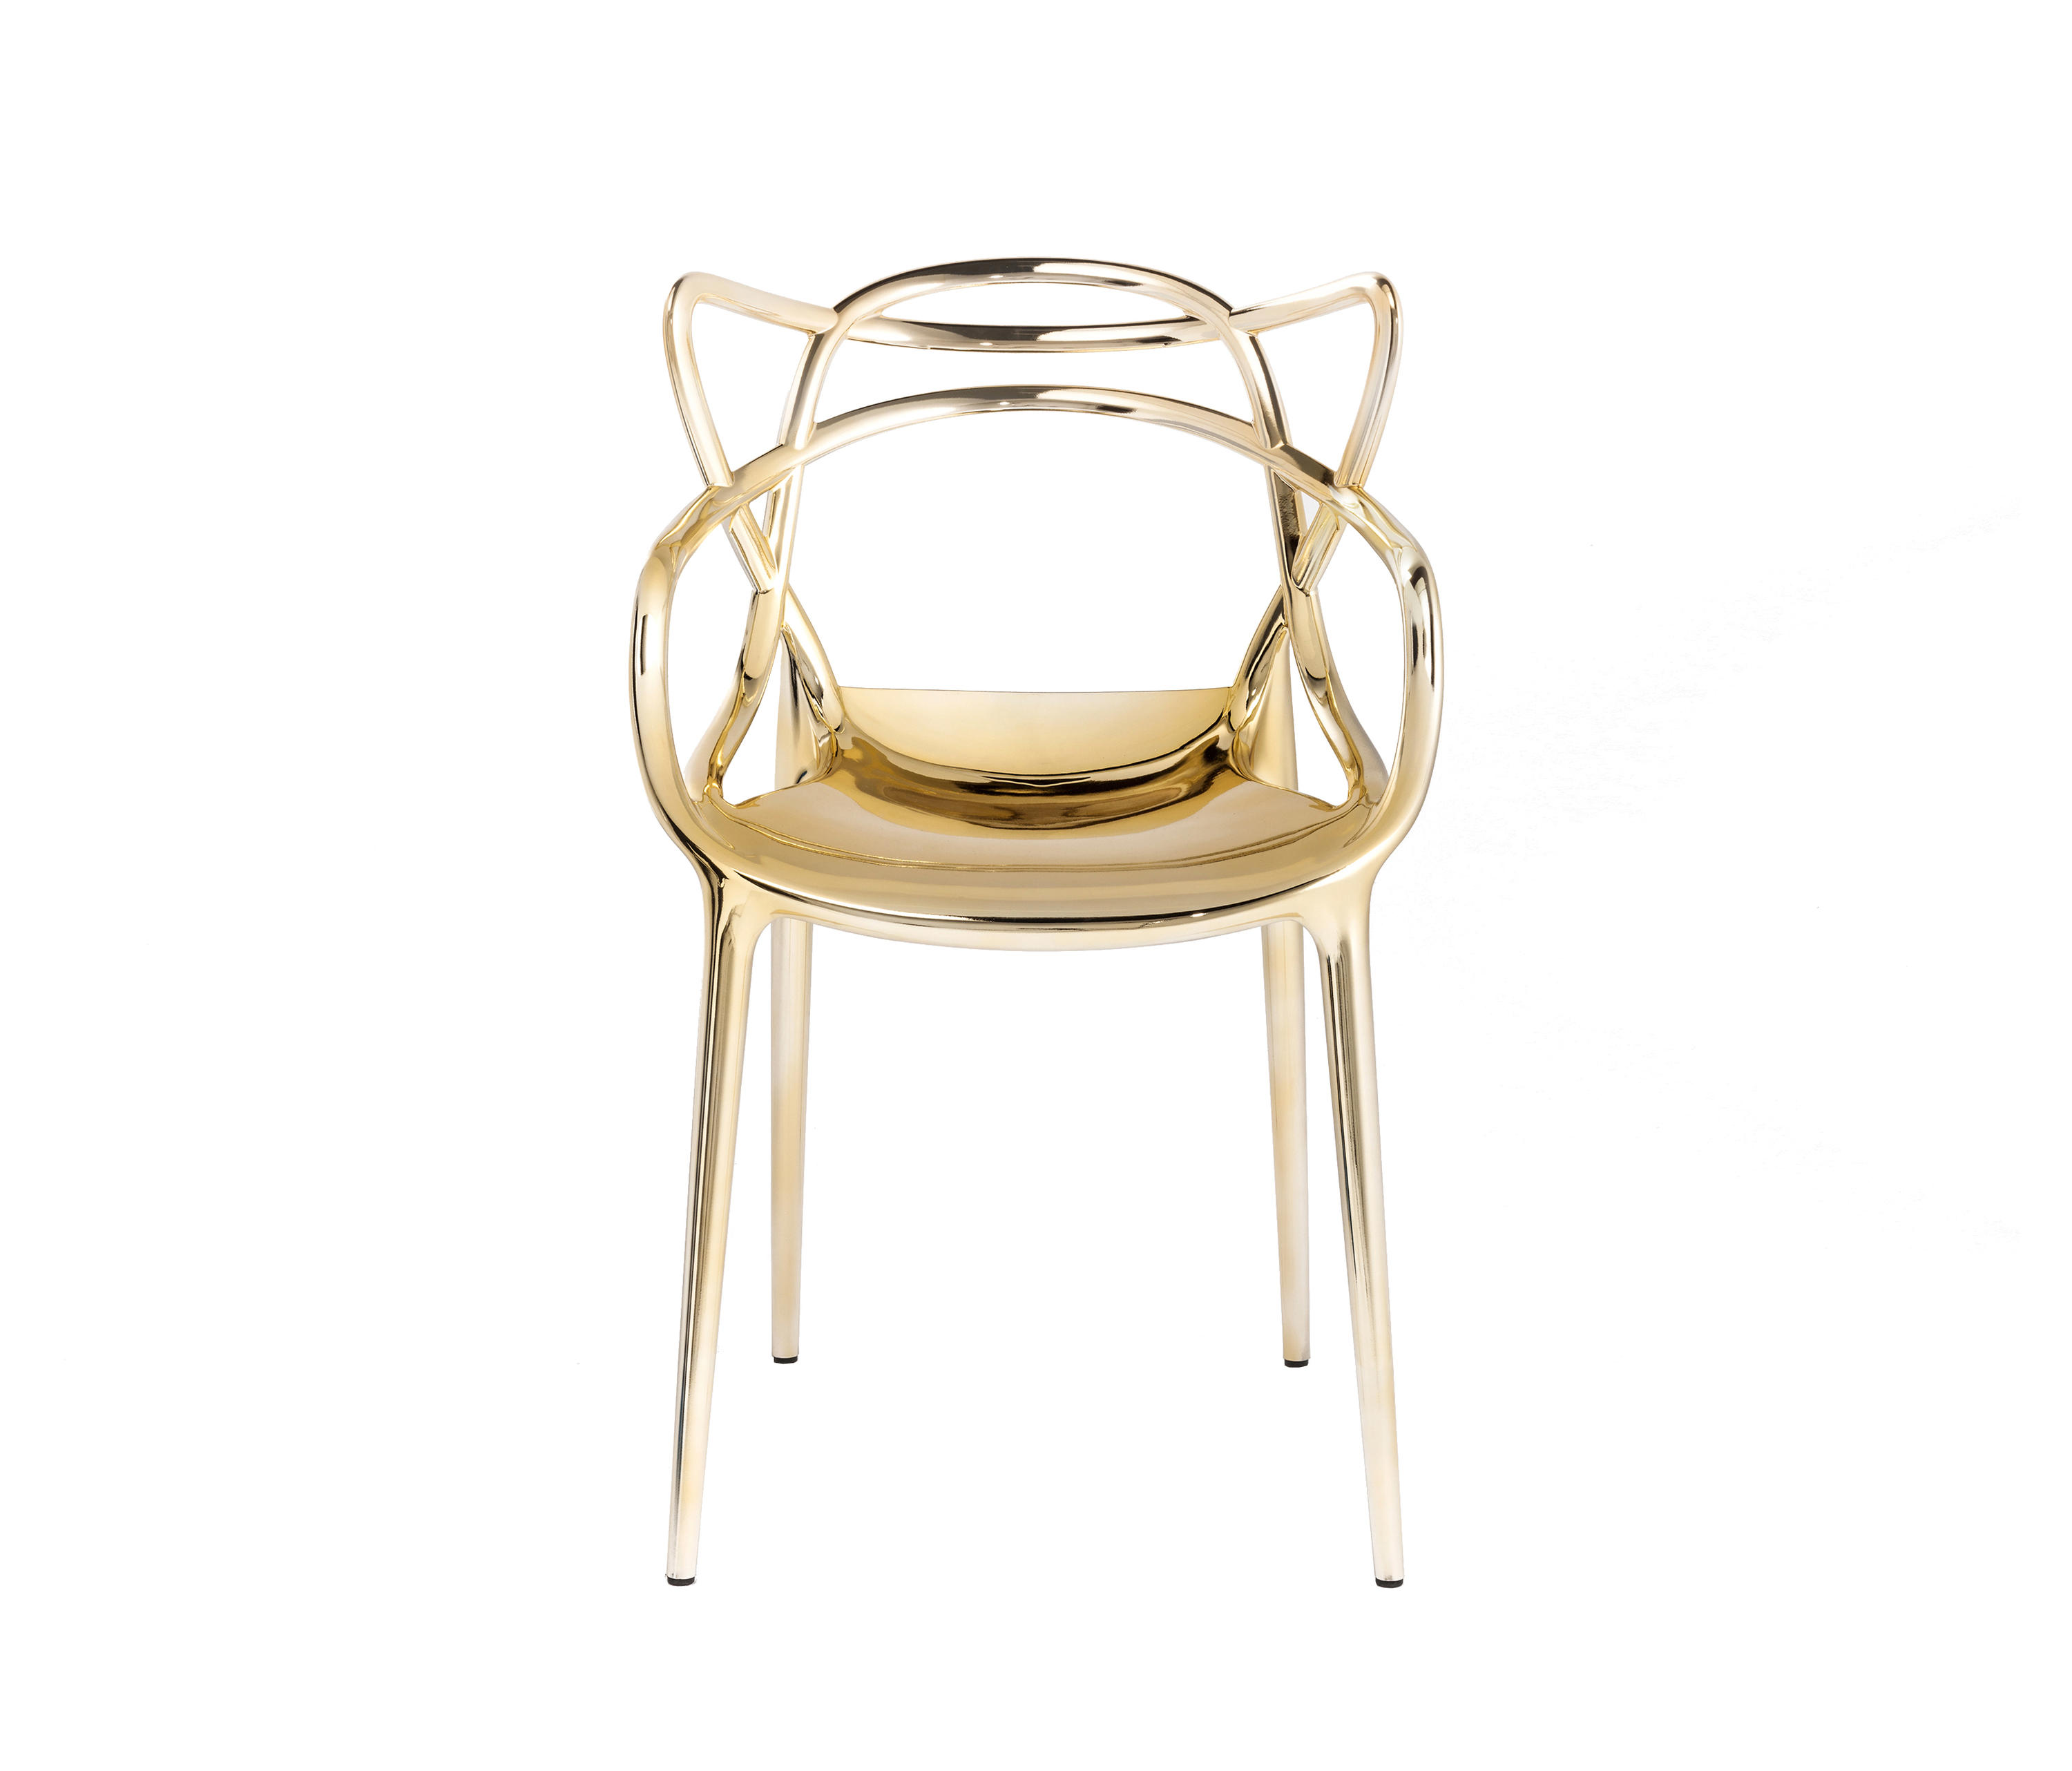 MASTERS Restaurant chairs from Kartell